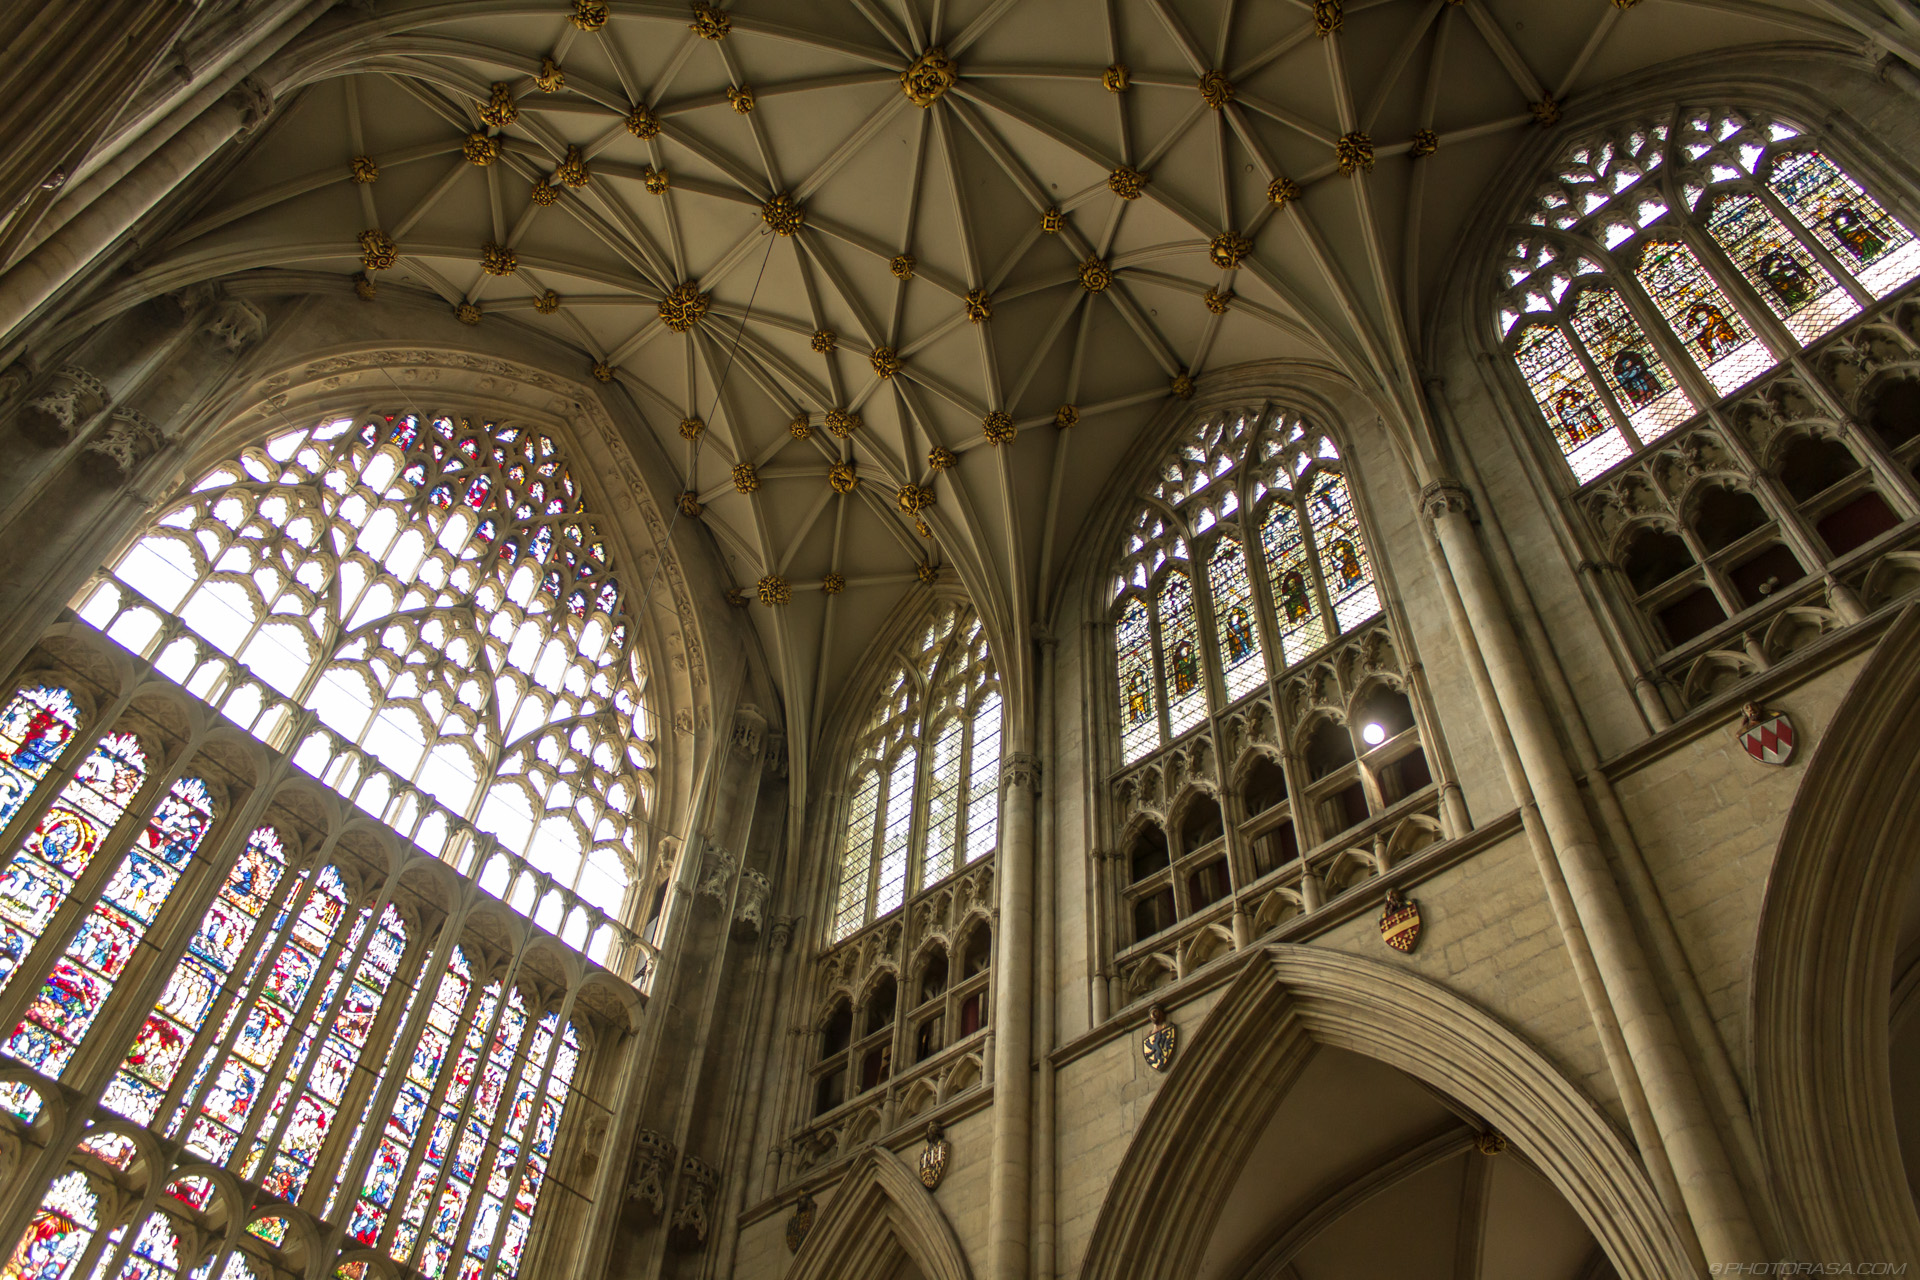 http://photorasa.com/places/yorkminster-cathedral/attachment/rose-window-and-ceiling/